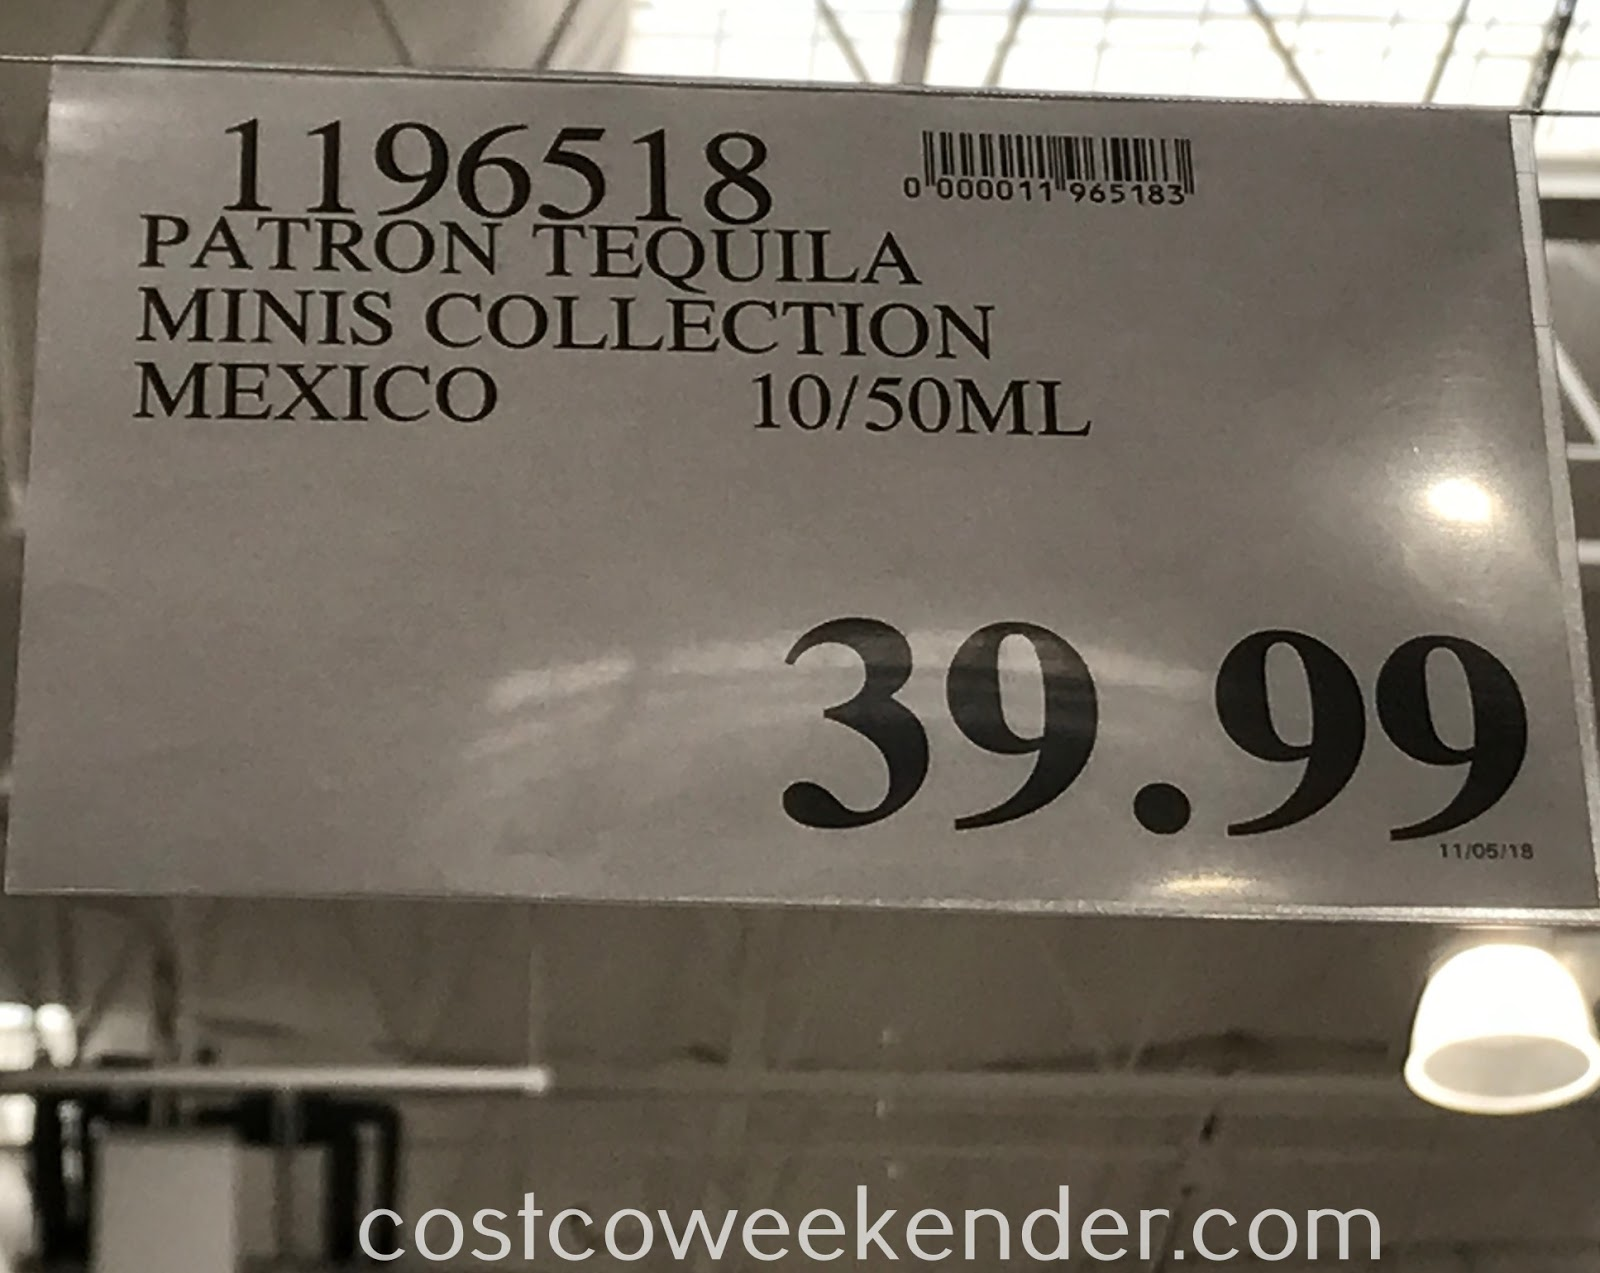 Deal for the Patron Tequila Limited Edition Gift Pack at Costco